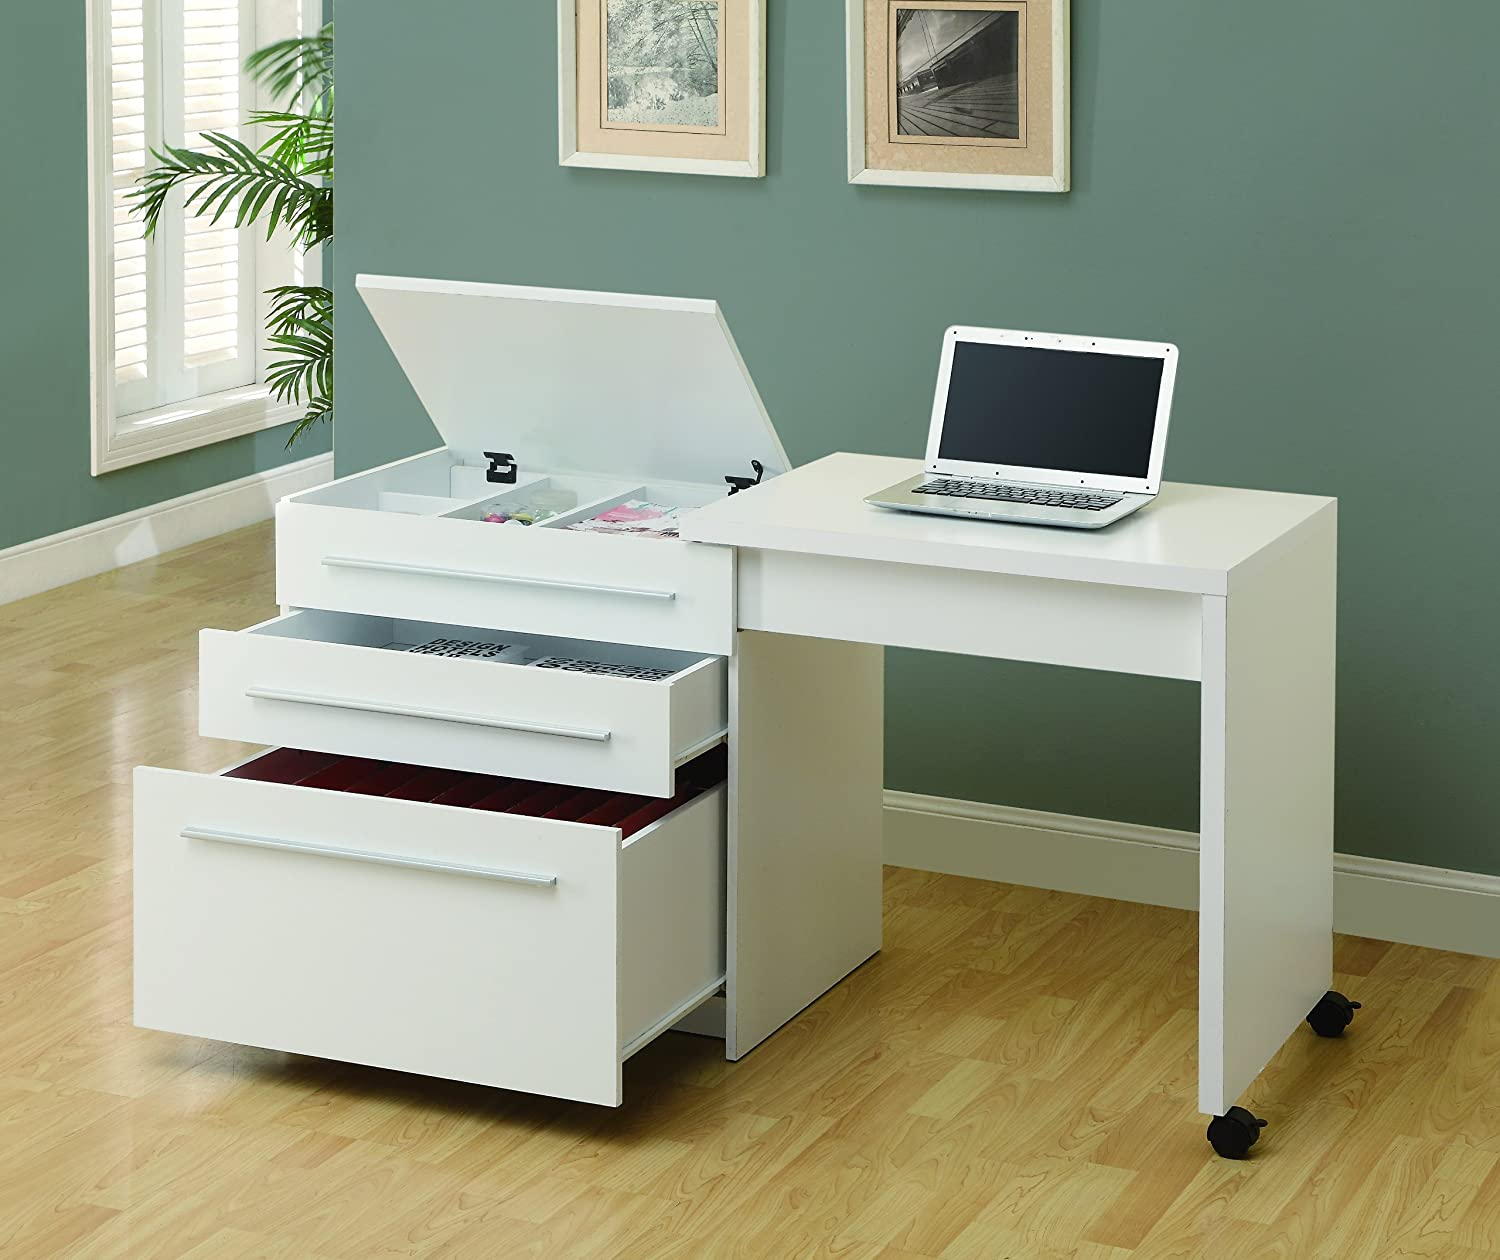 Amazon.com: Monarch Slide Out Desk With Storage Drawers, White: Kitchen U0026  Dining